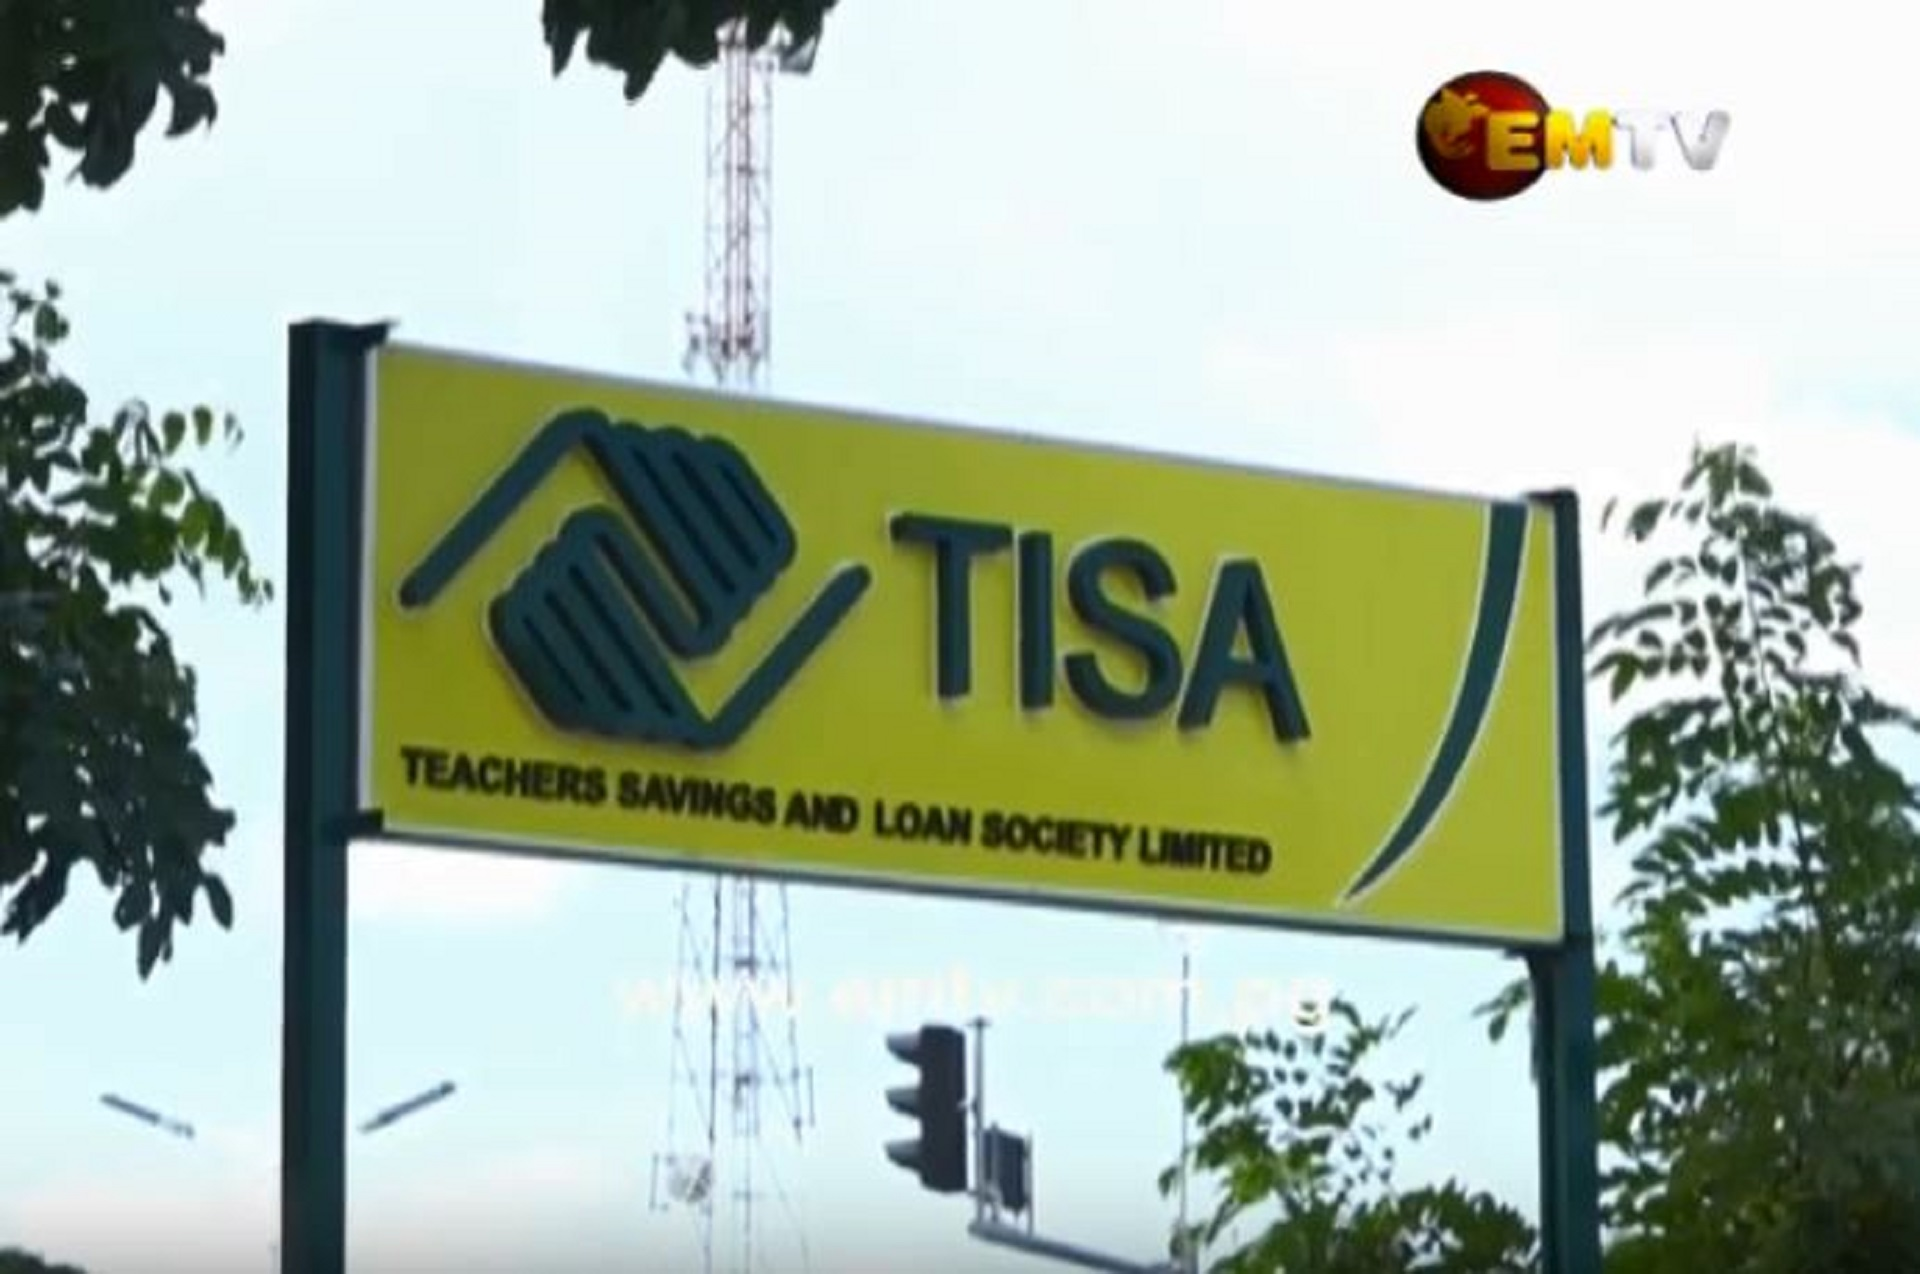 TISA Announces Bonus Interest Payment to Members.